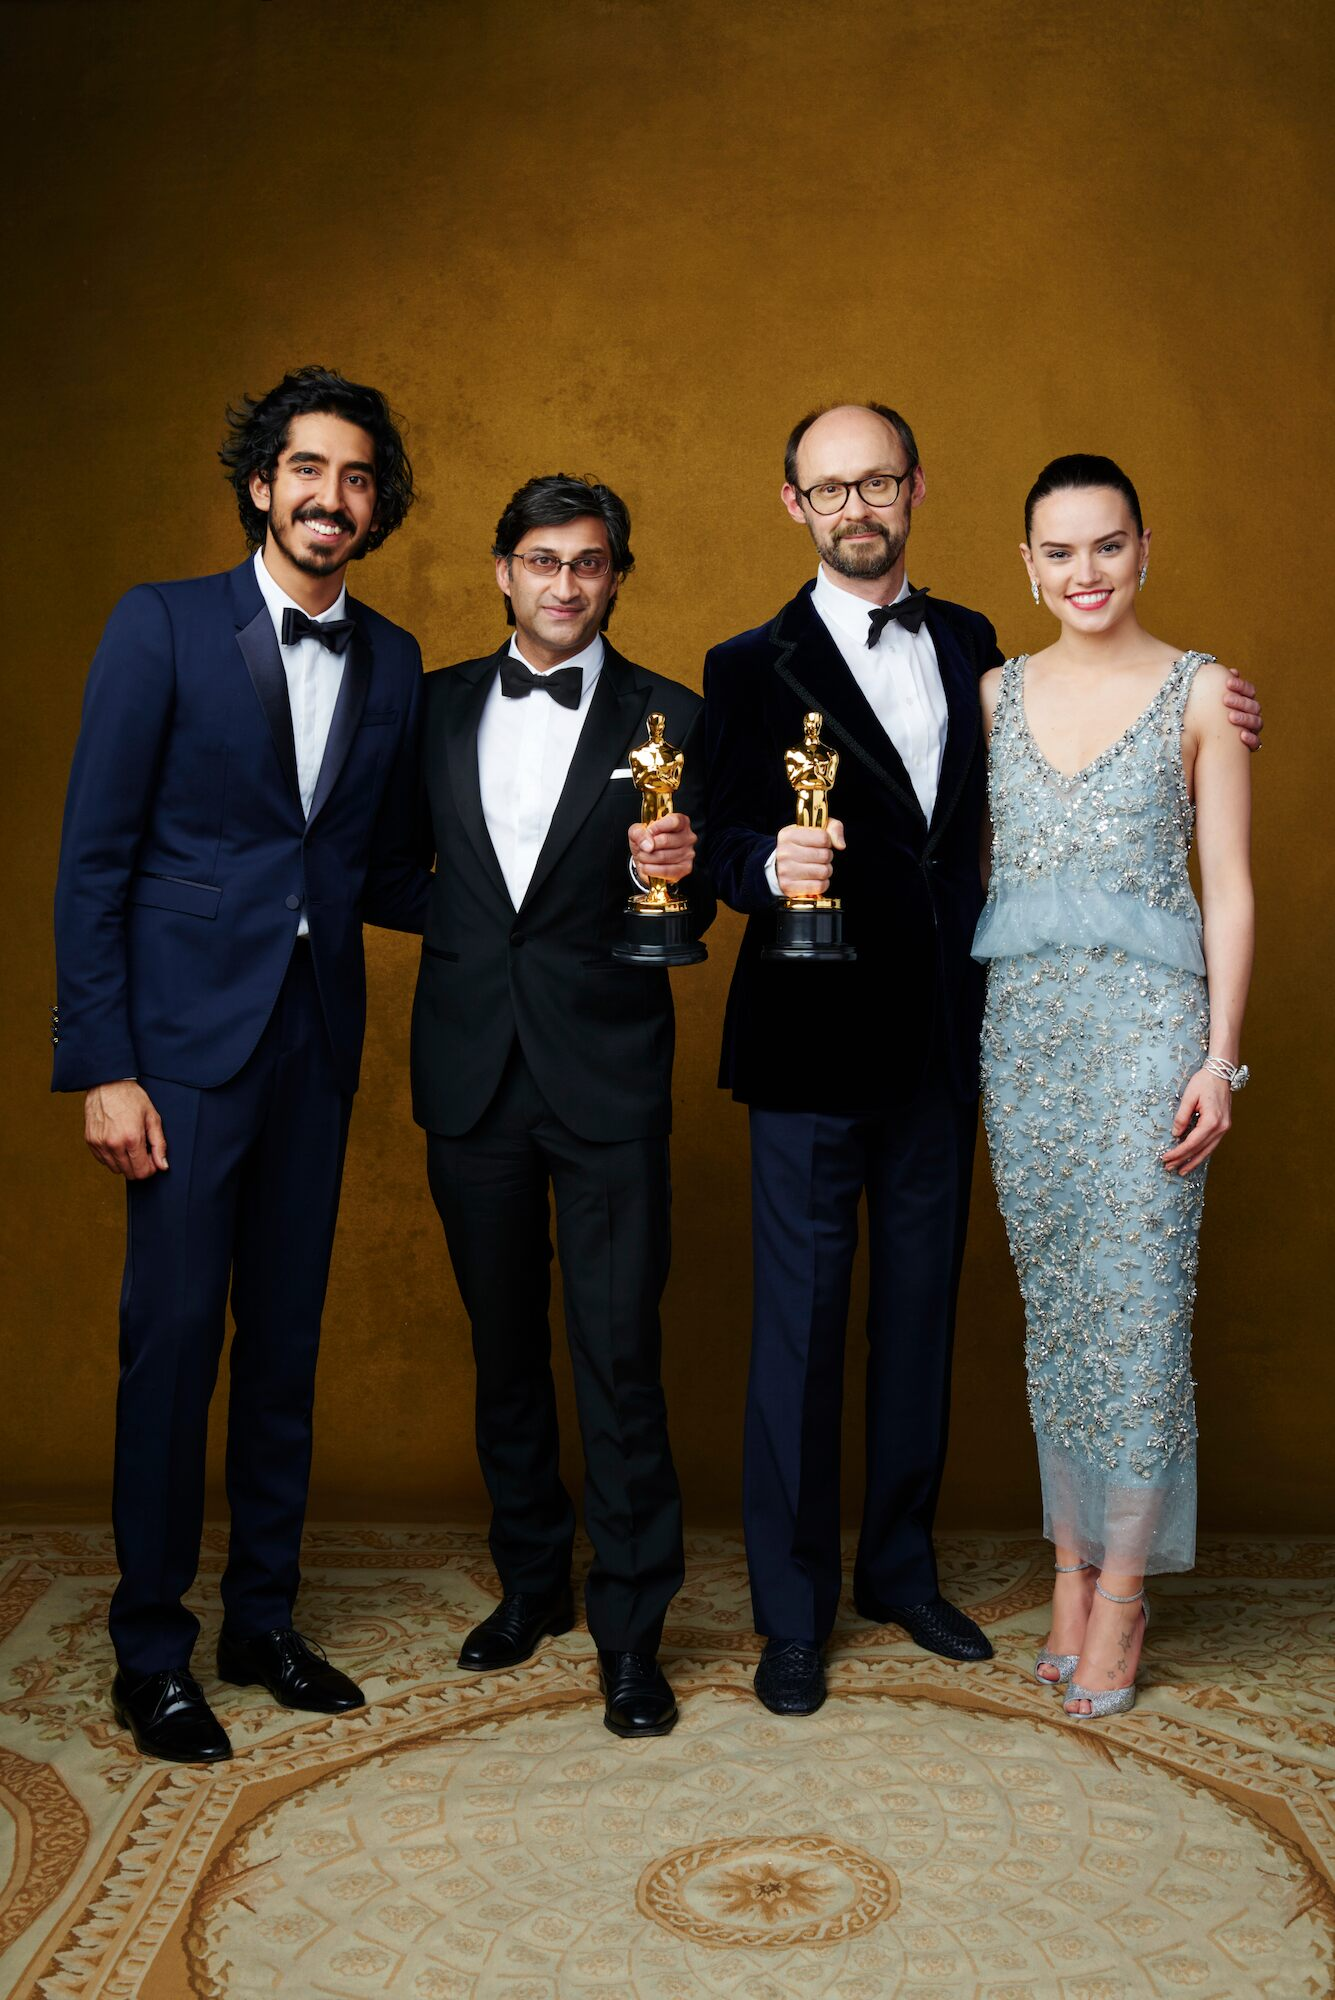 Documentary (Feature), with presenters Dev Patel and Daisy Ridley